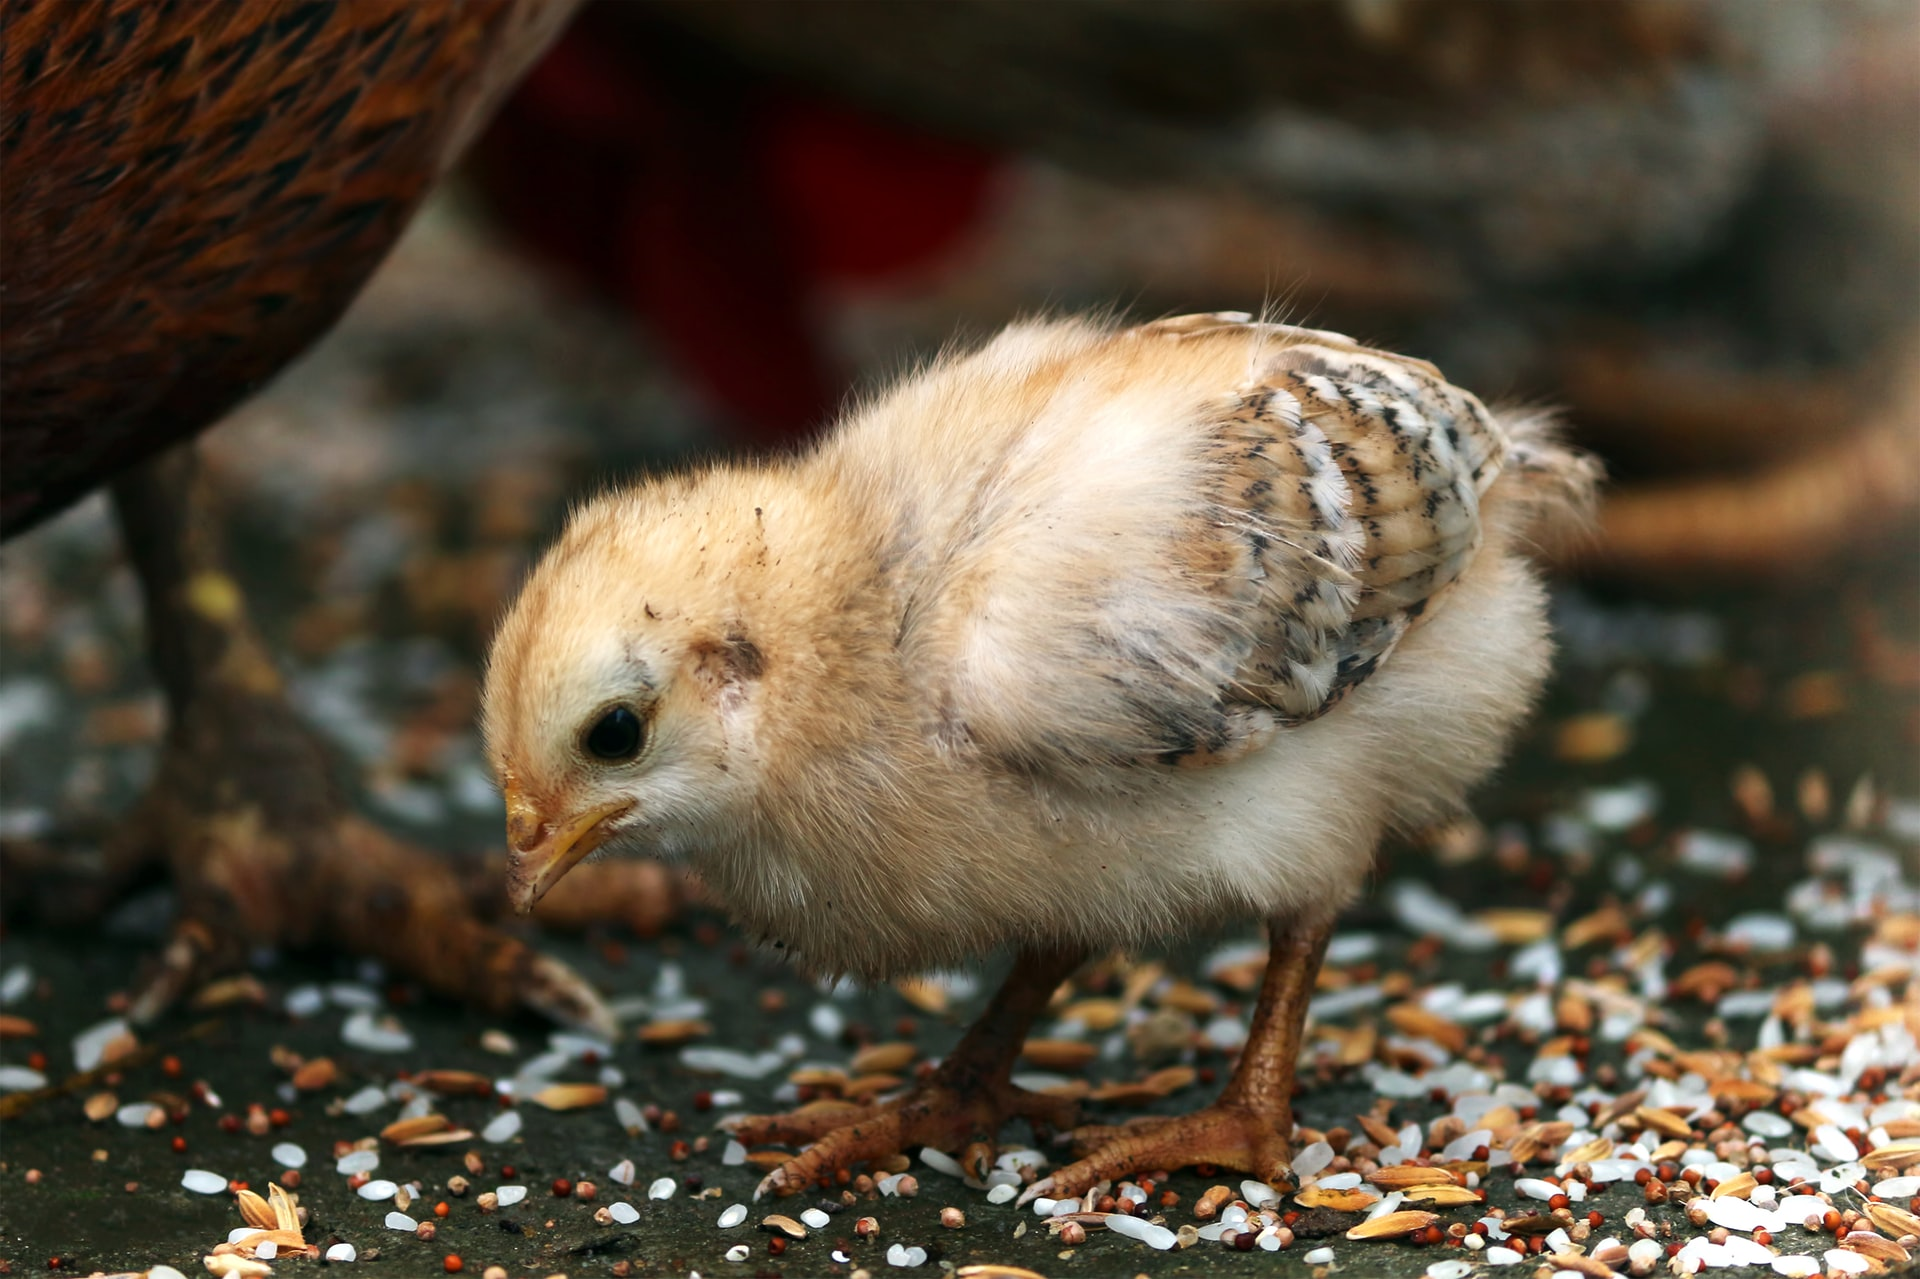 a fuzzy baby chick